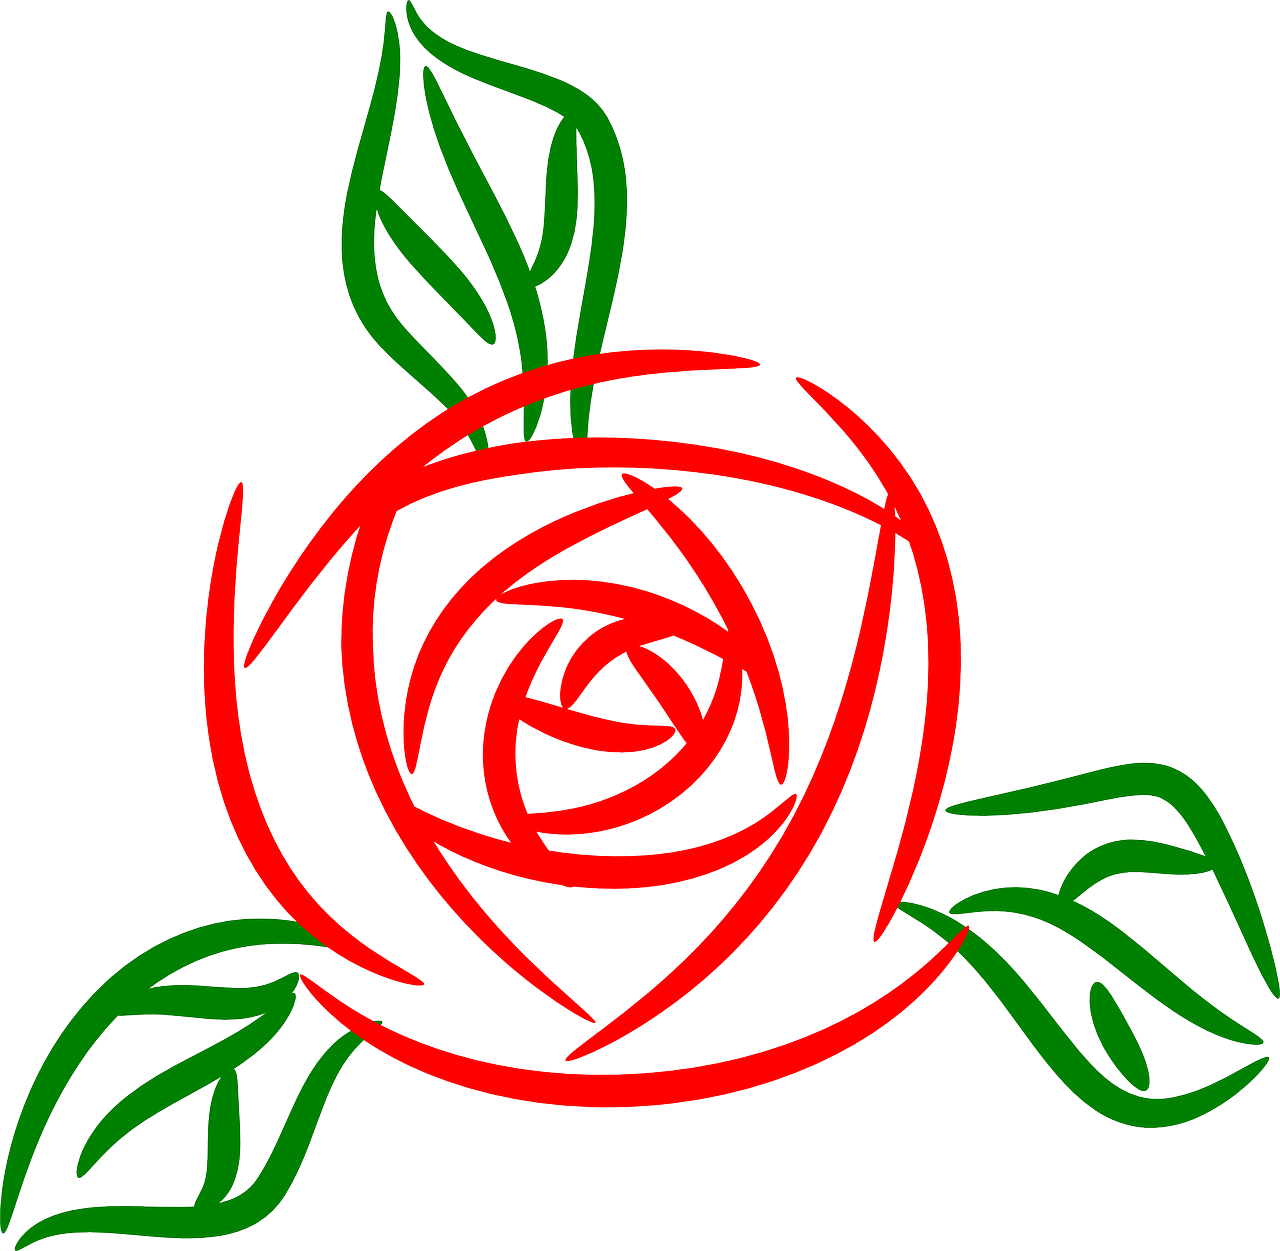 How To Draw A Flower Clipart.